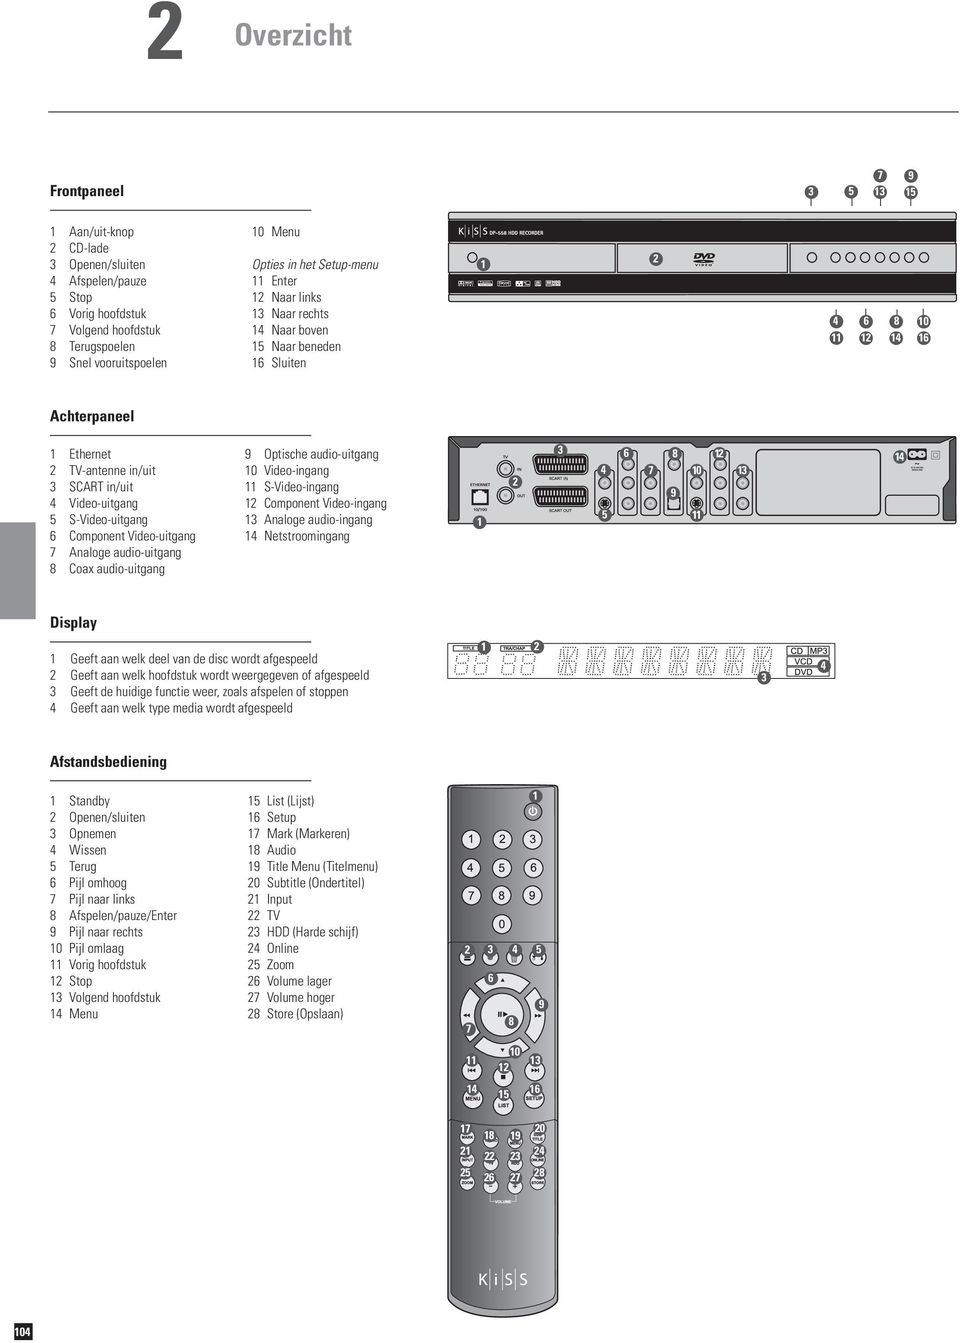 S-Video-uitgang 6 Component Video-uitgang 7 Analoge audio-uitgang 8 Coax audio-uitgang 9 Optische audio-uitgang 10 Video-ingang 11 S-Video-ingang 12 Component Video-ingang 13 Analoge audio-ingang 14